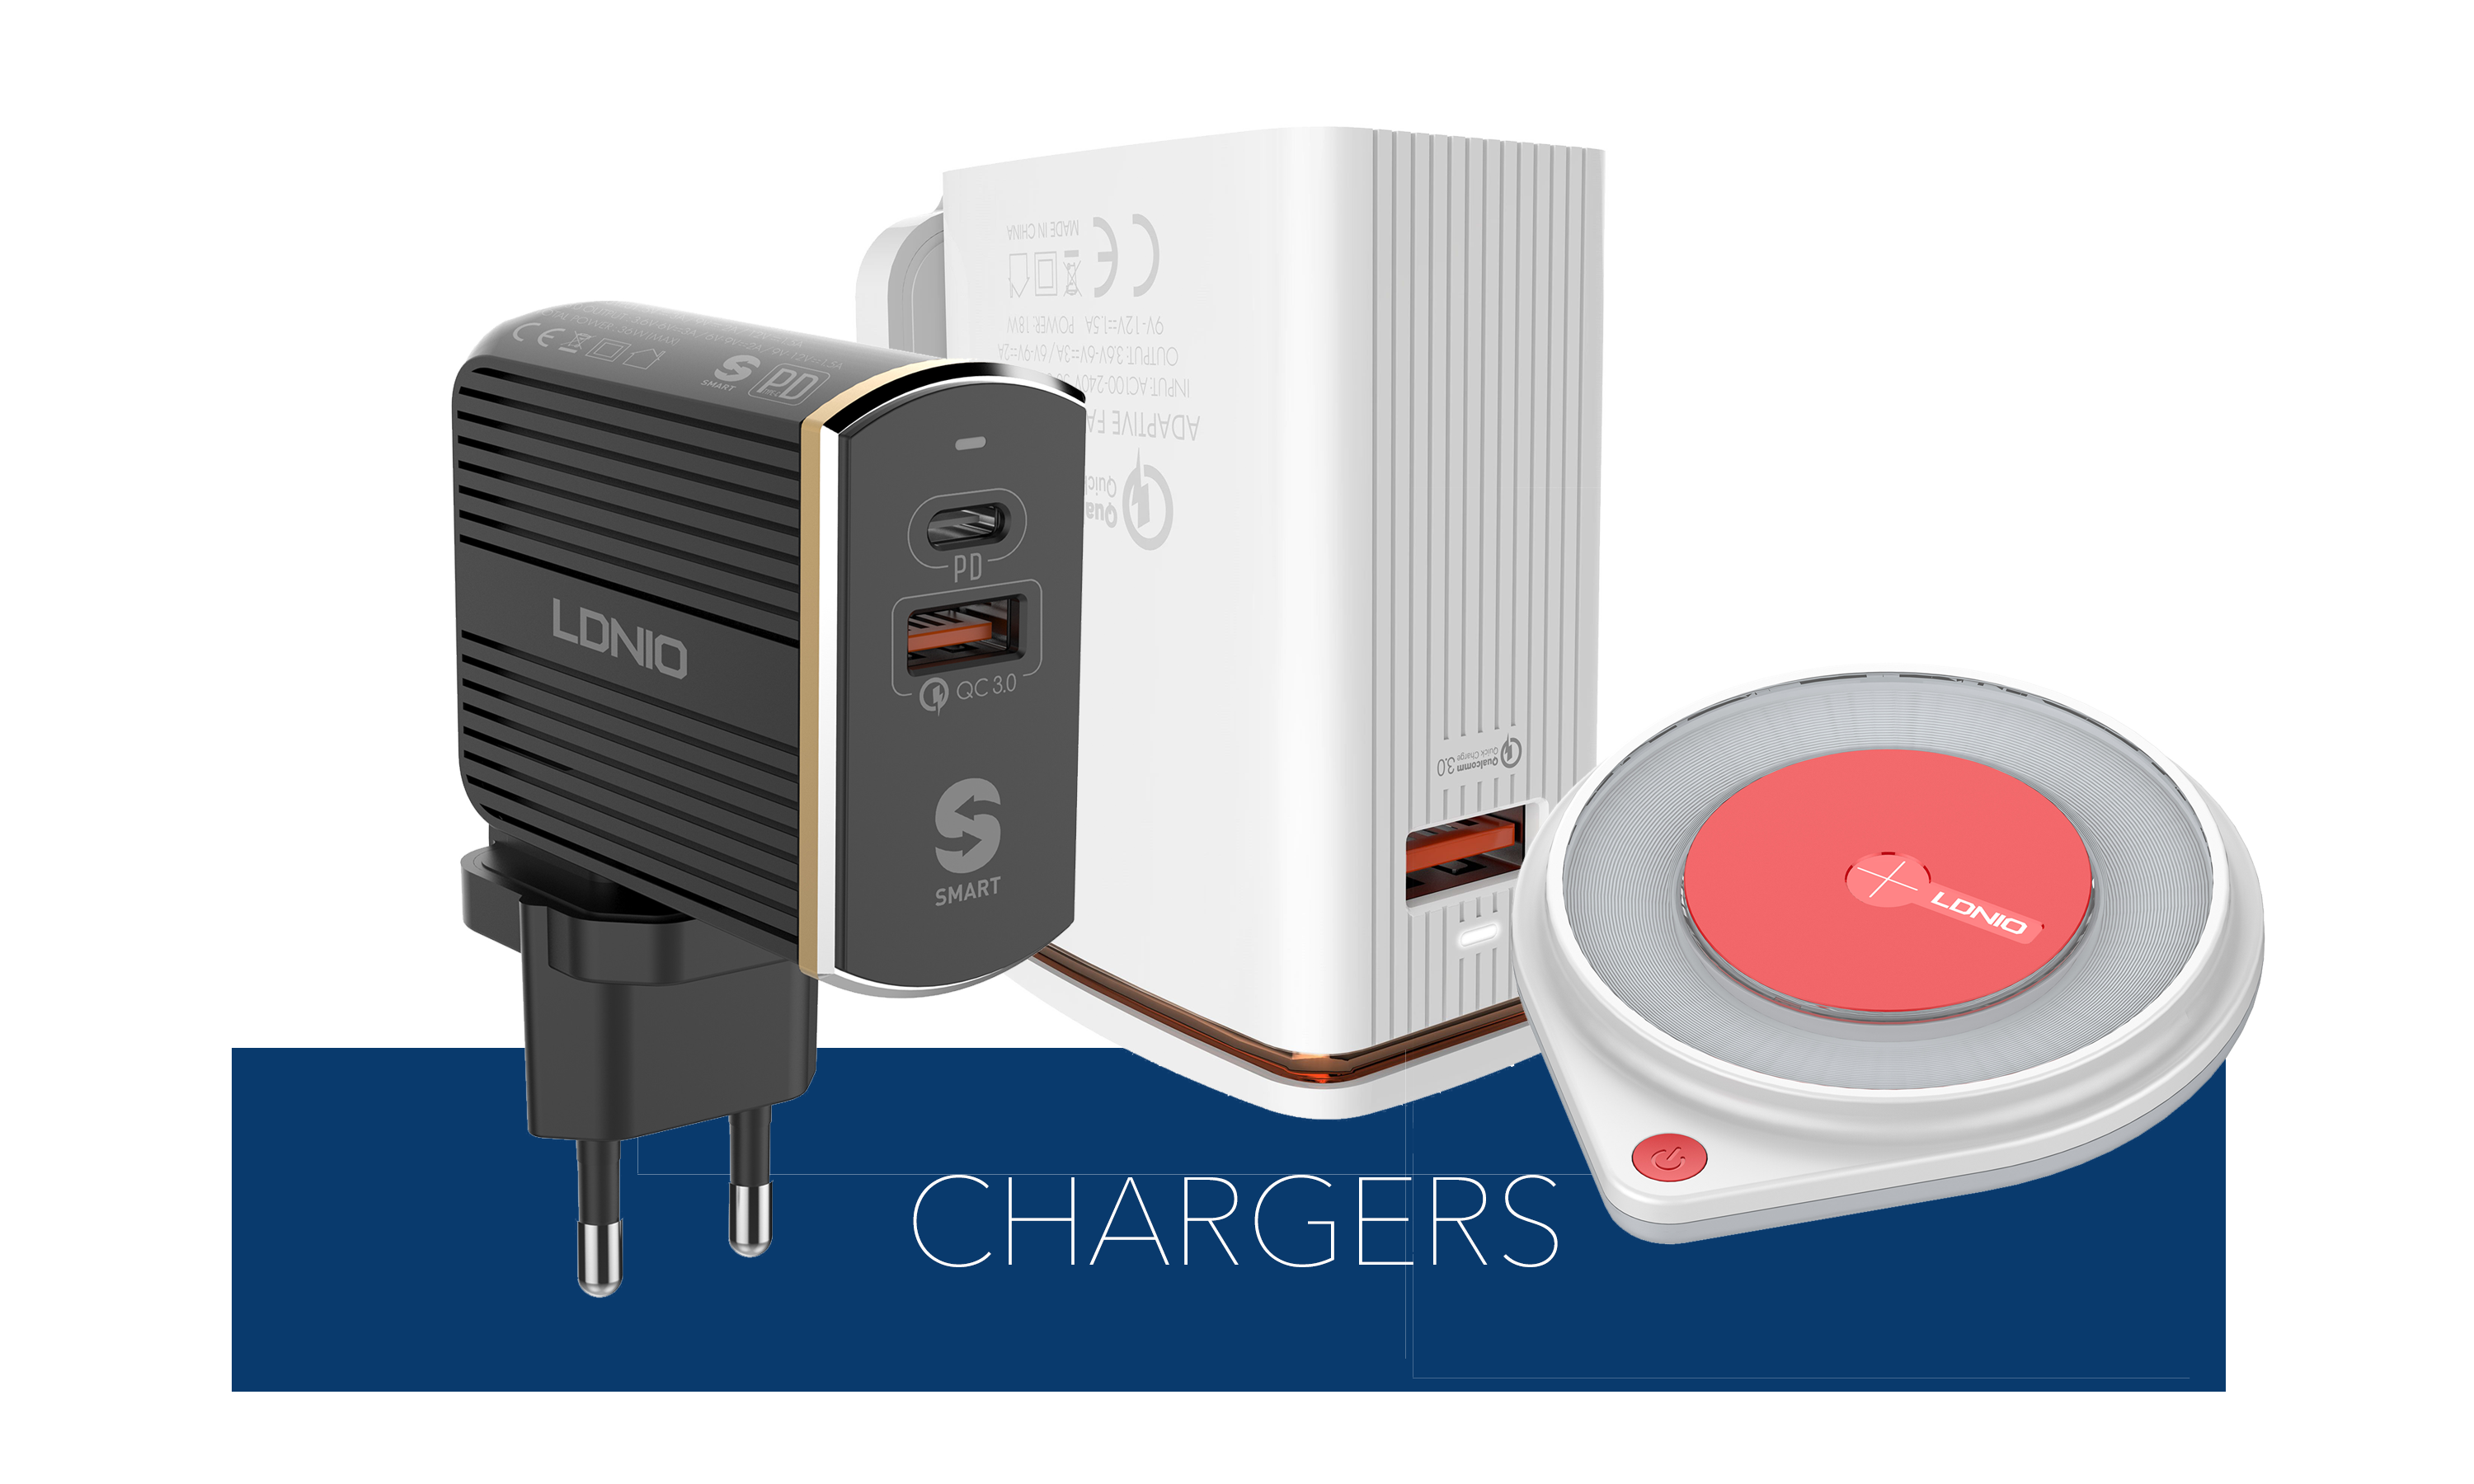 (CHARGERS) Button